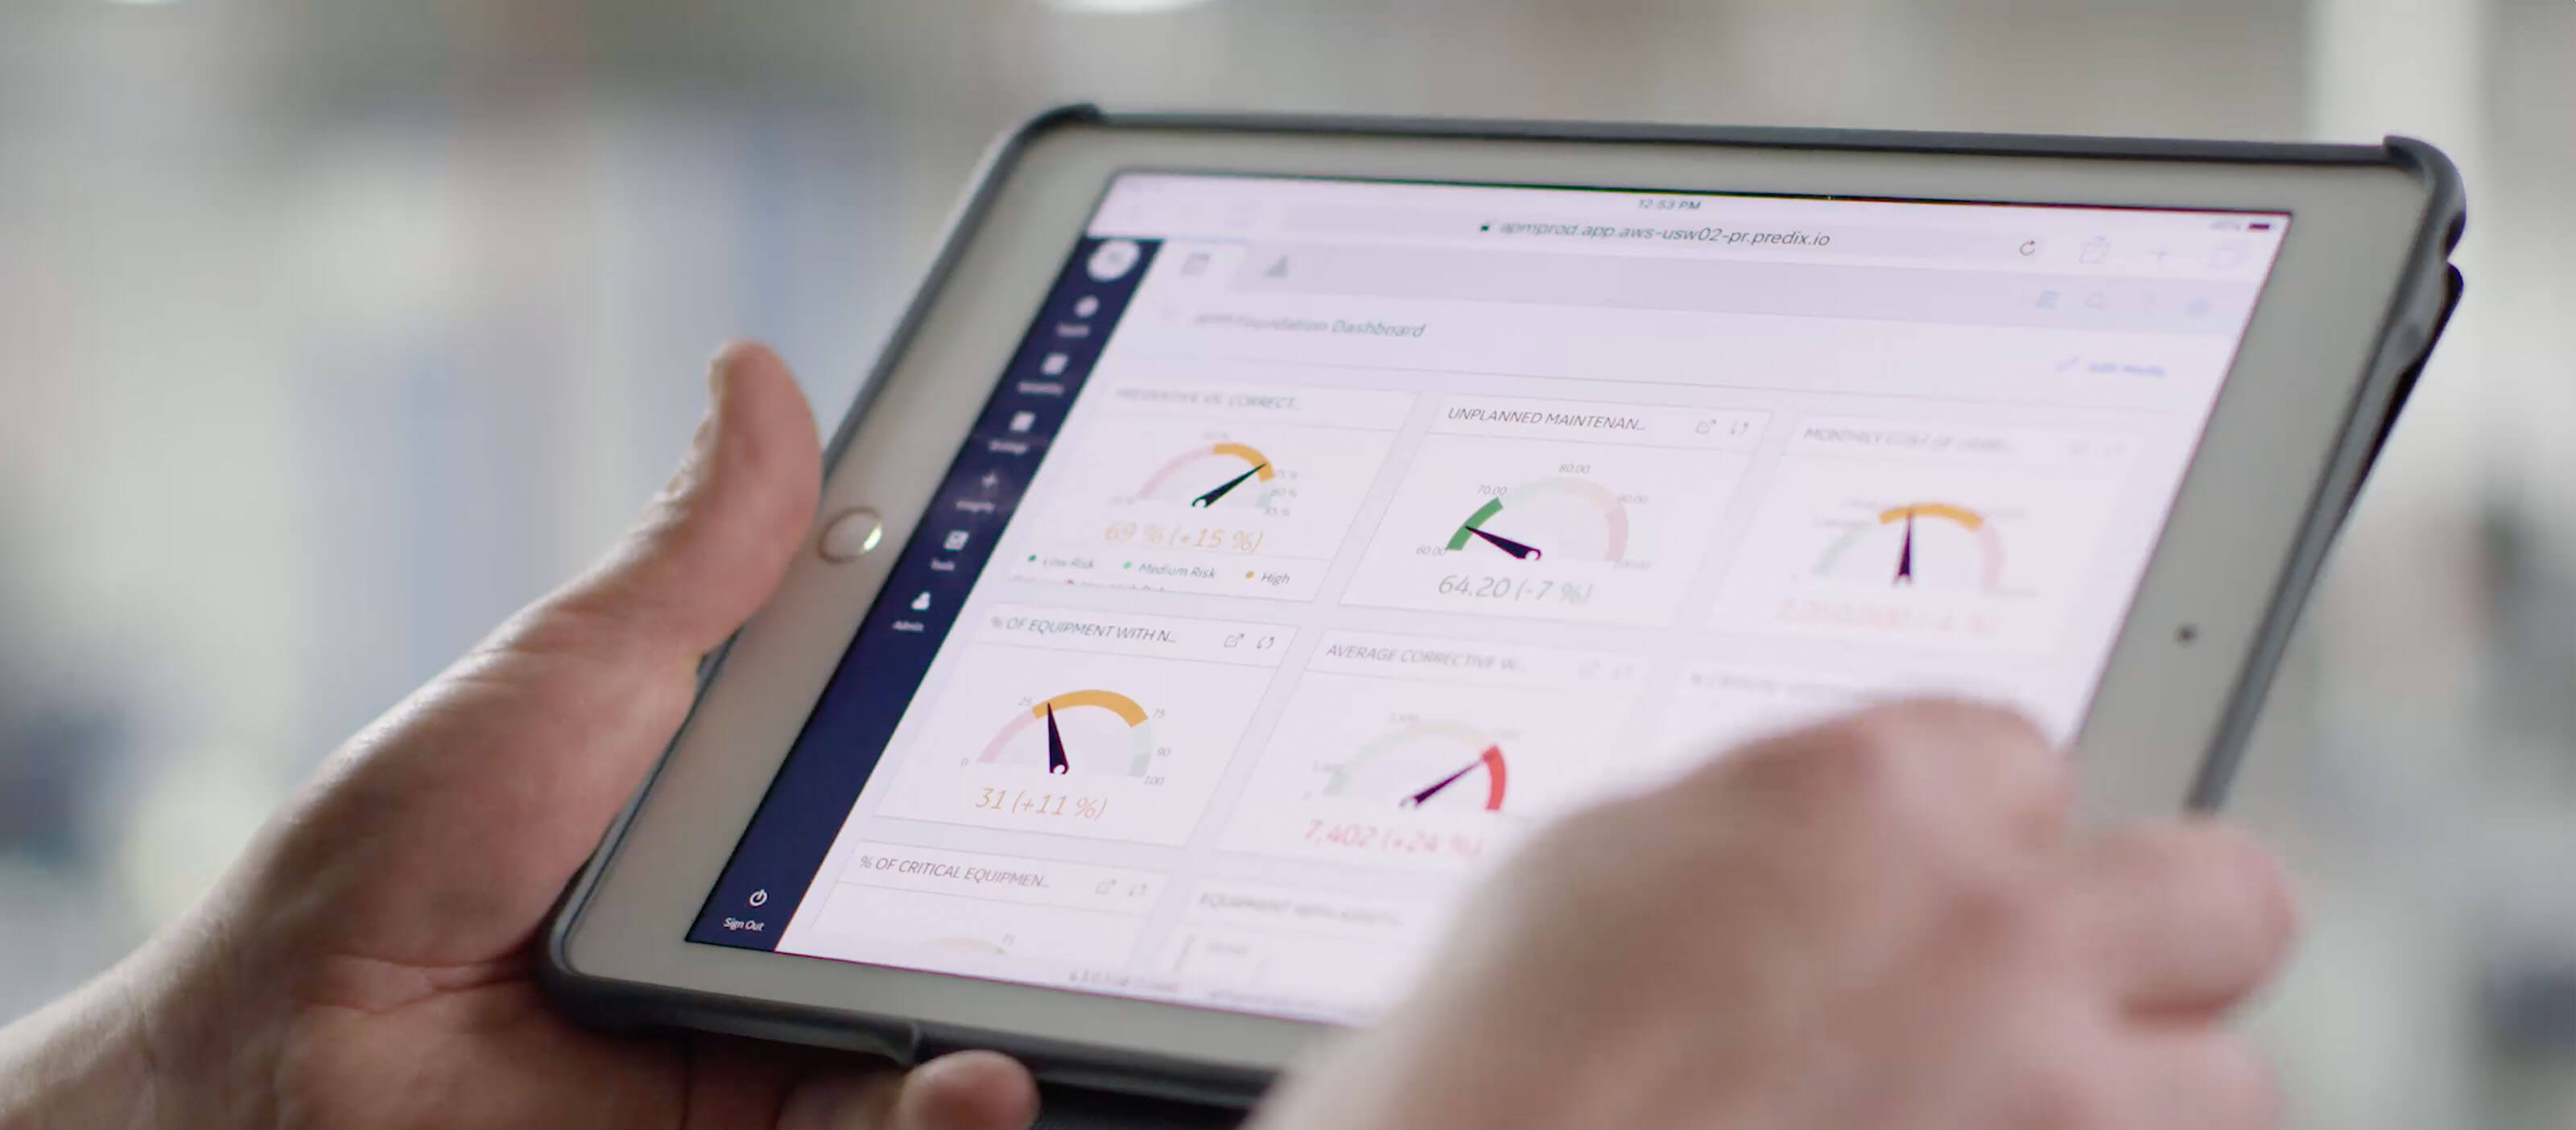 Predix APM software from GE Digital, screenshotPredix APM software from GE Digital, screenshot